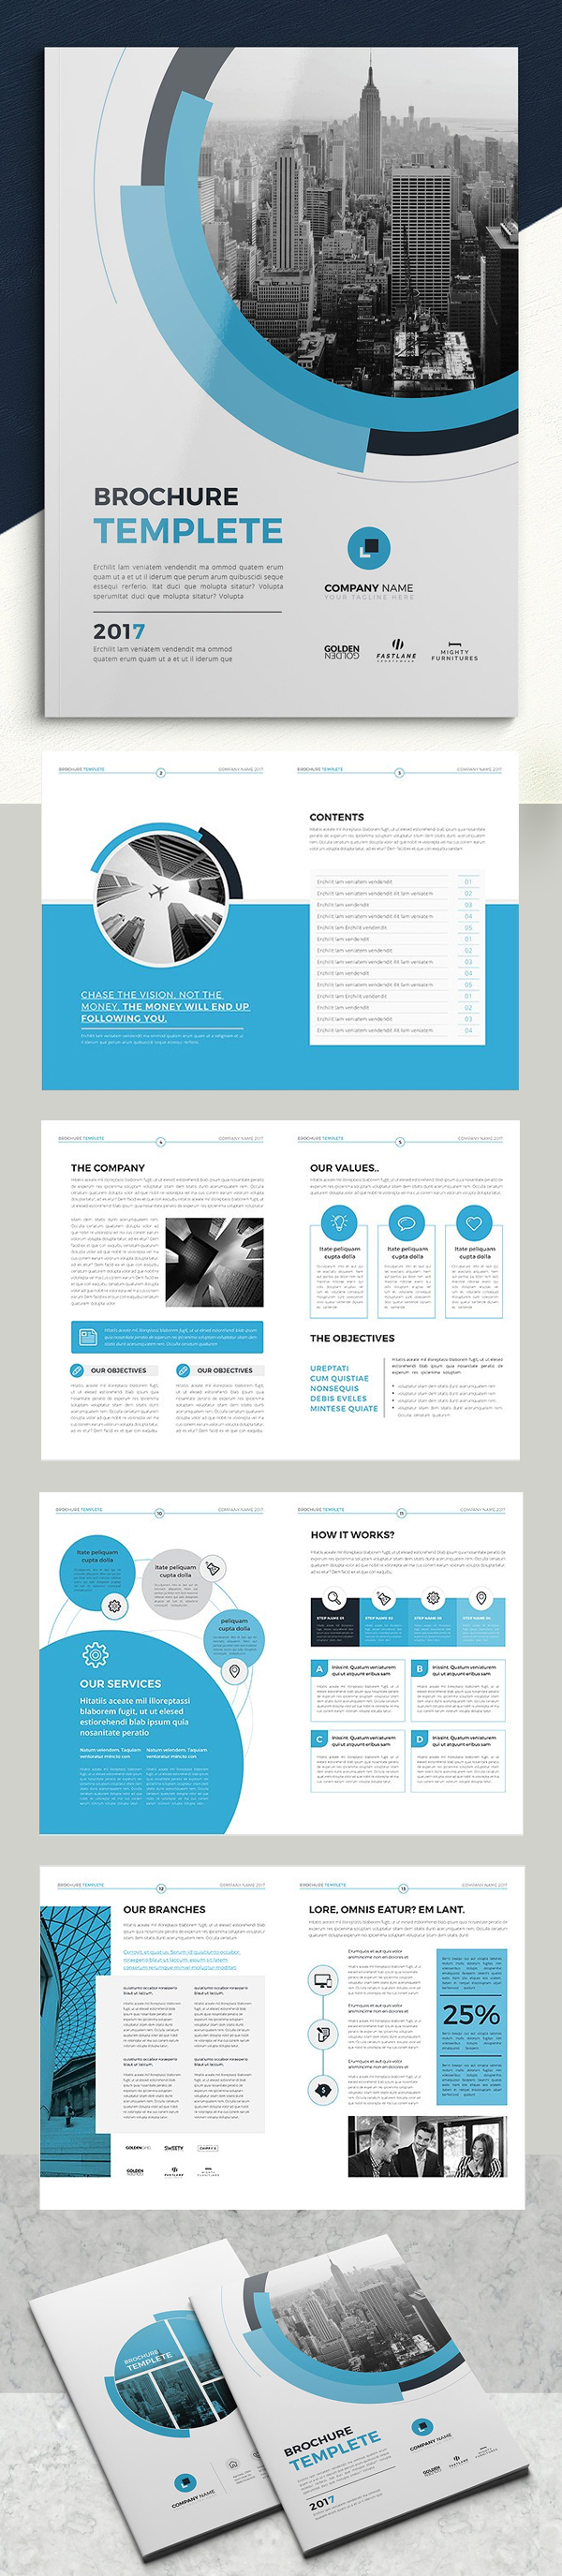 100 Professional Corporate Brochure Templates - 35